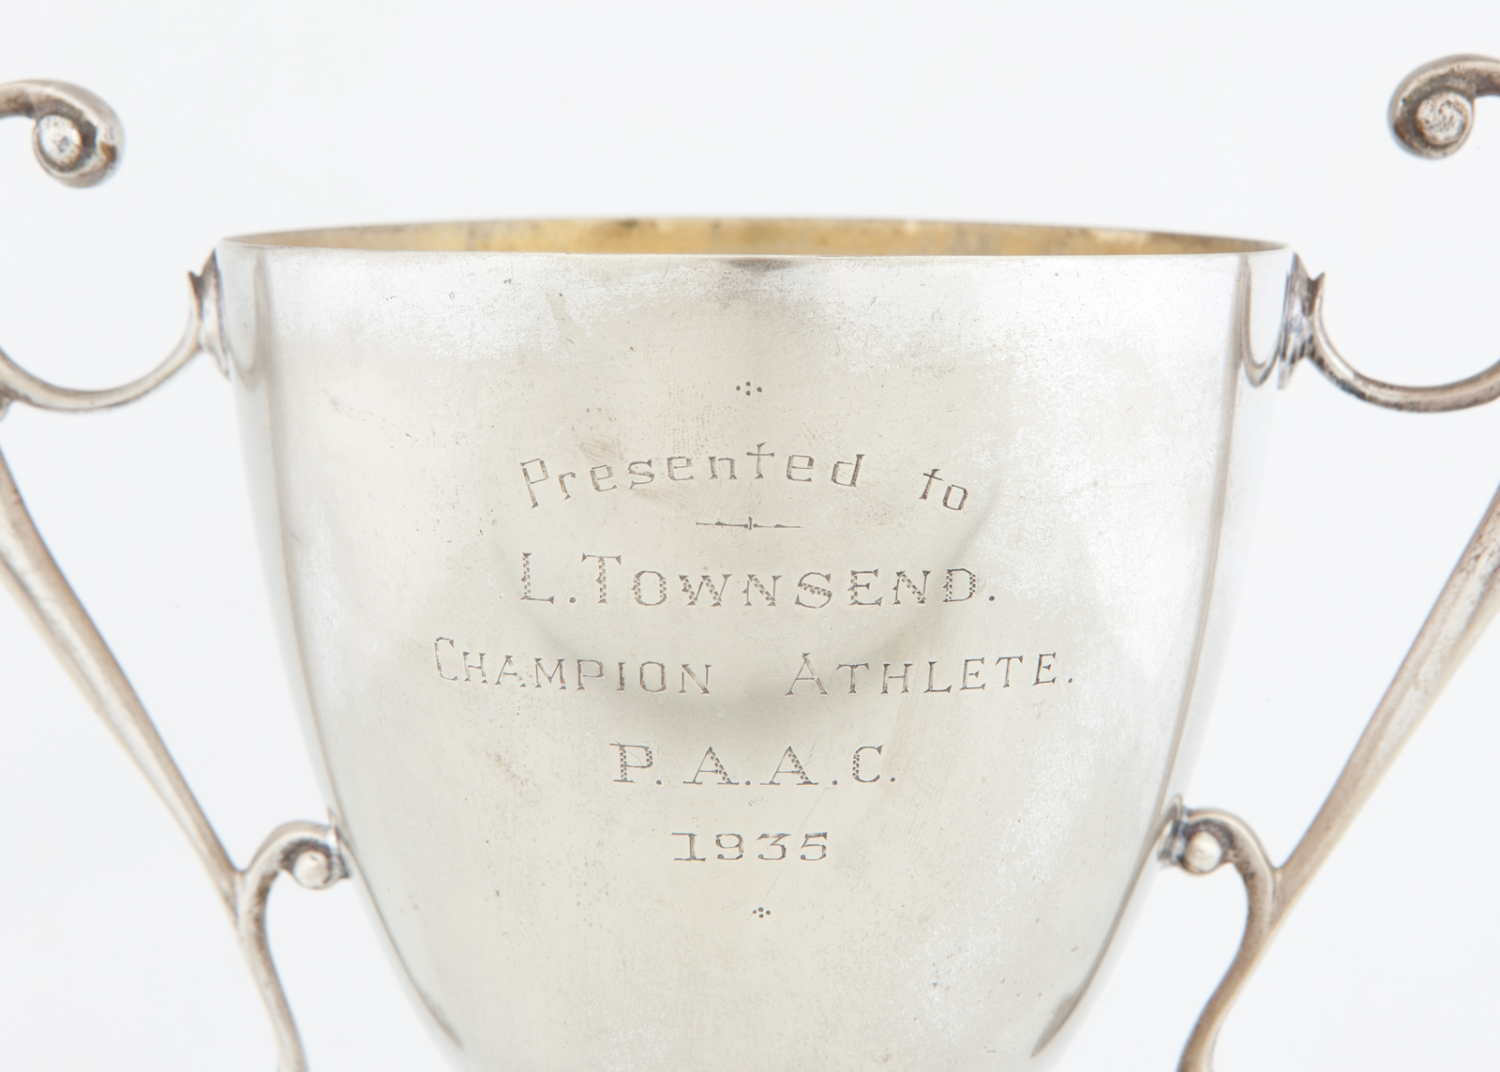 Trophy (detail) presented to L. Townsend, Champion Athlete, P.A.A.C., 1935